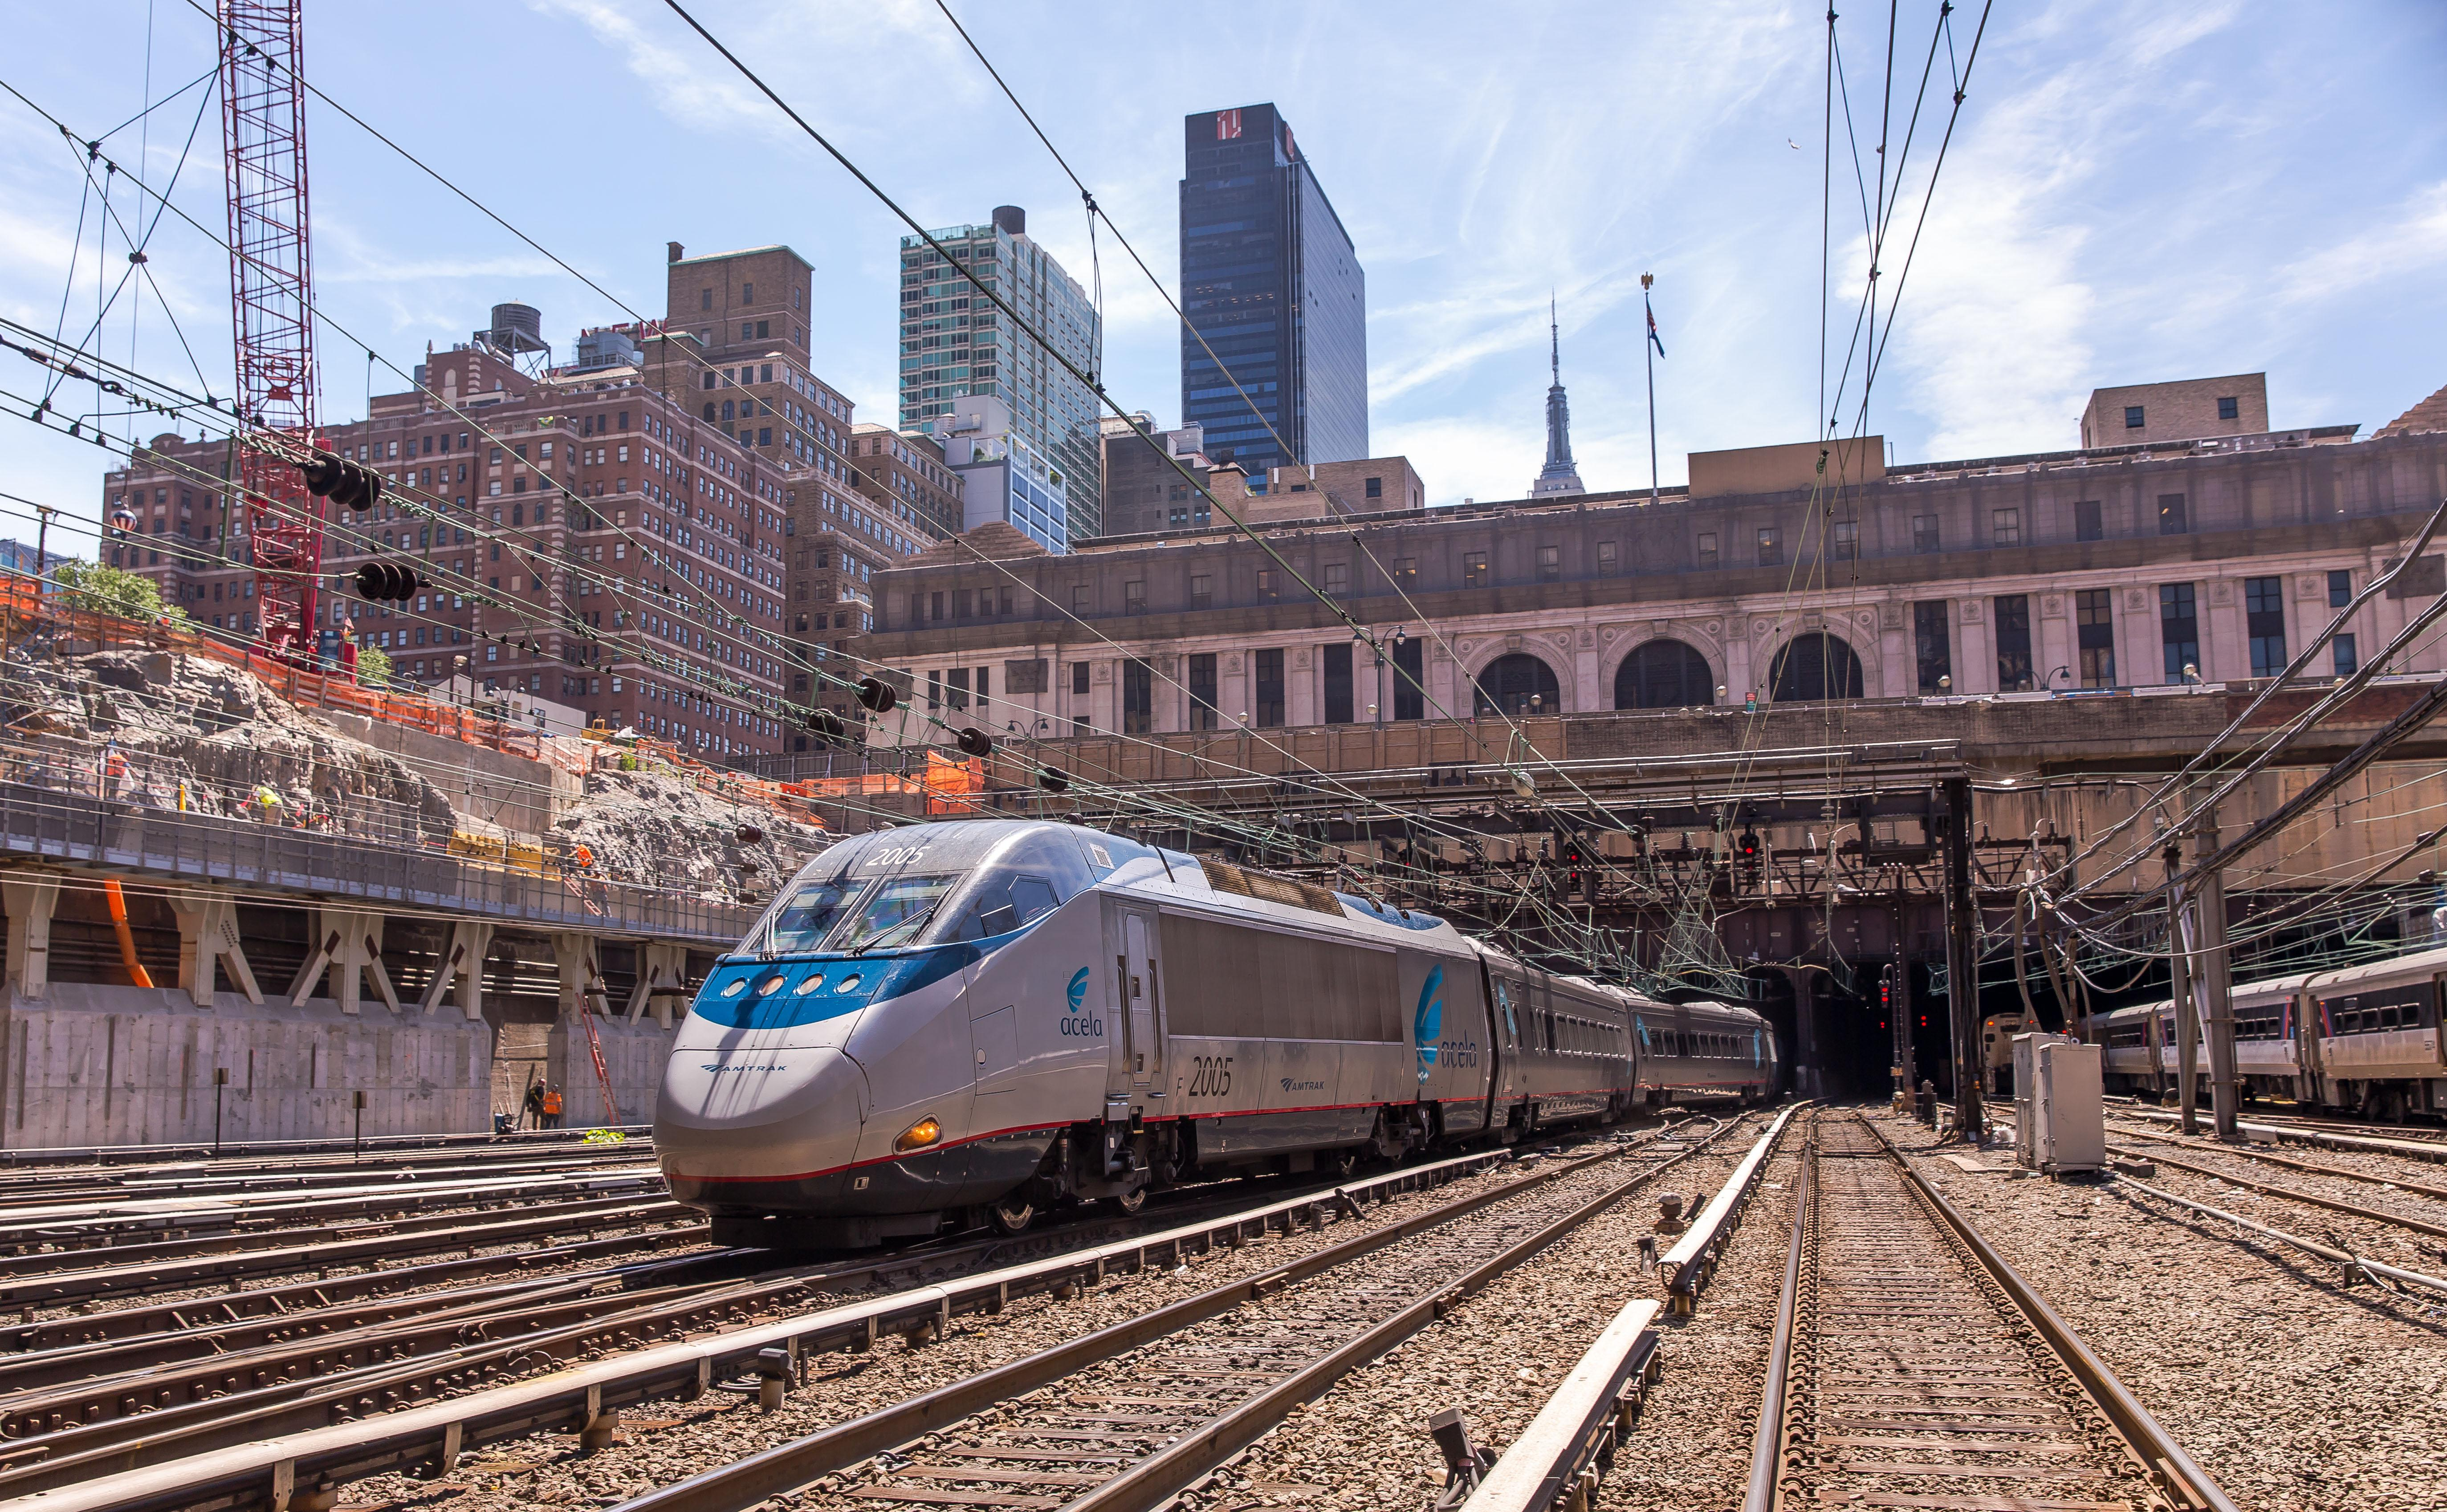 If you love giving super unique gifts, or you have a weirdly strong attachment to Amtrak's Acela trains, we have just the gift for you. (Image: Courtesy Amtrak)